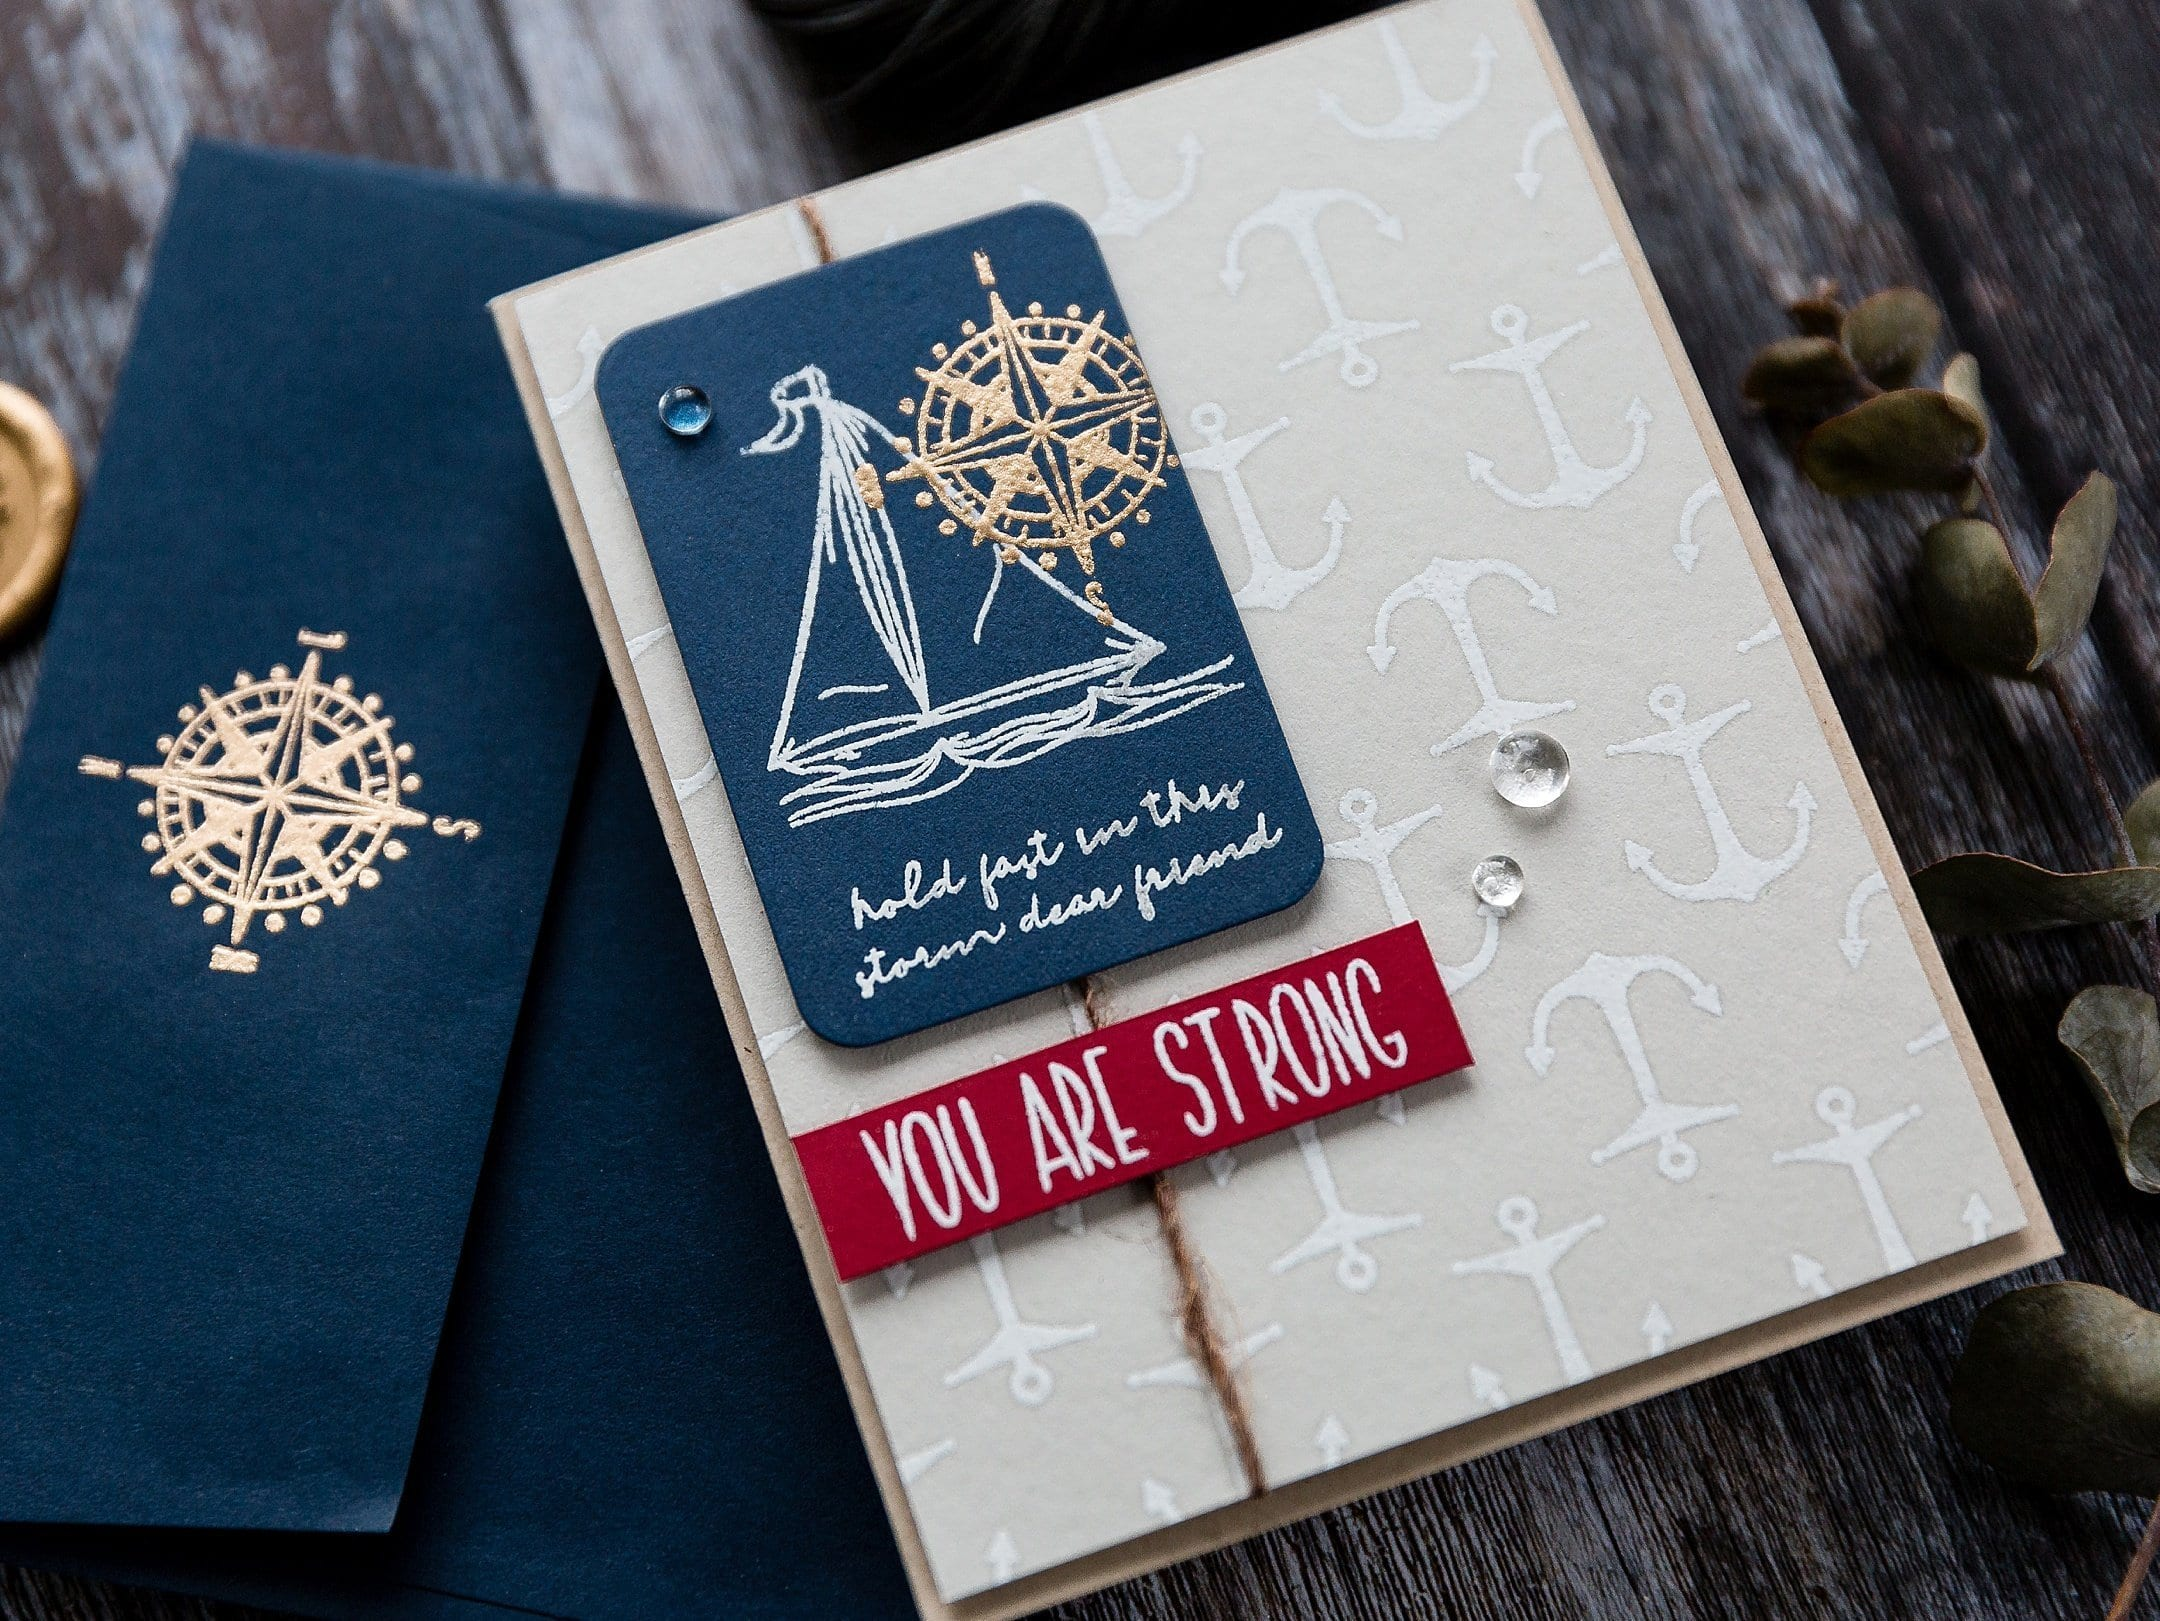 Nautical encouragement handmade cards by Debby Hughes using no colouring but simply stamping, heat embossing and die cutting. Supplies are from Simon Says Stamp. Find out more here:https://limedoodledesign.com/2019/06/no-colouring-simon-says-stamp-release/